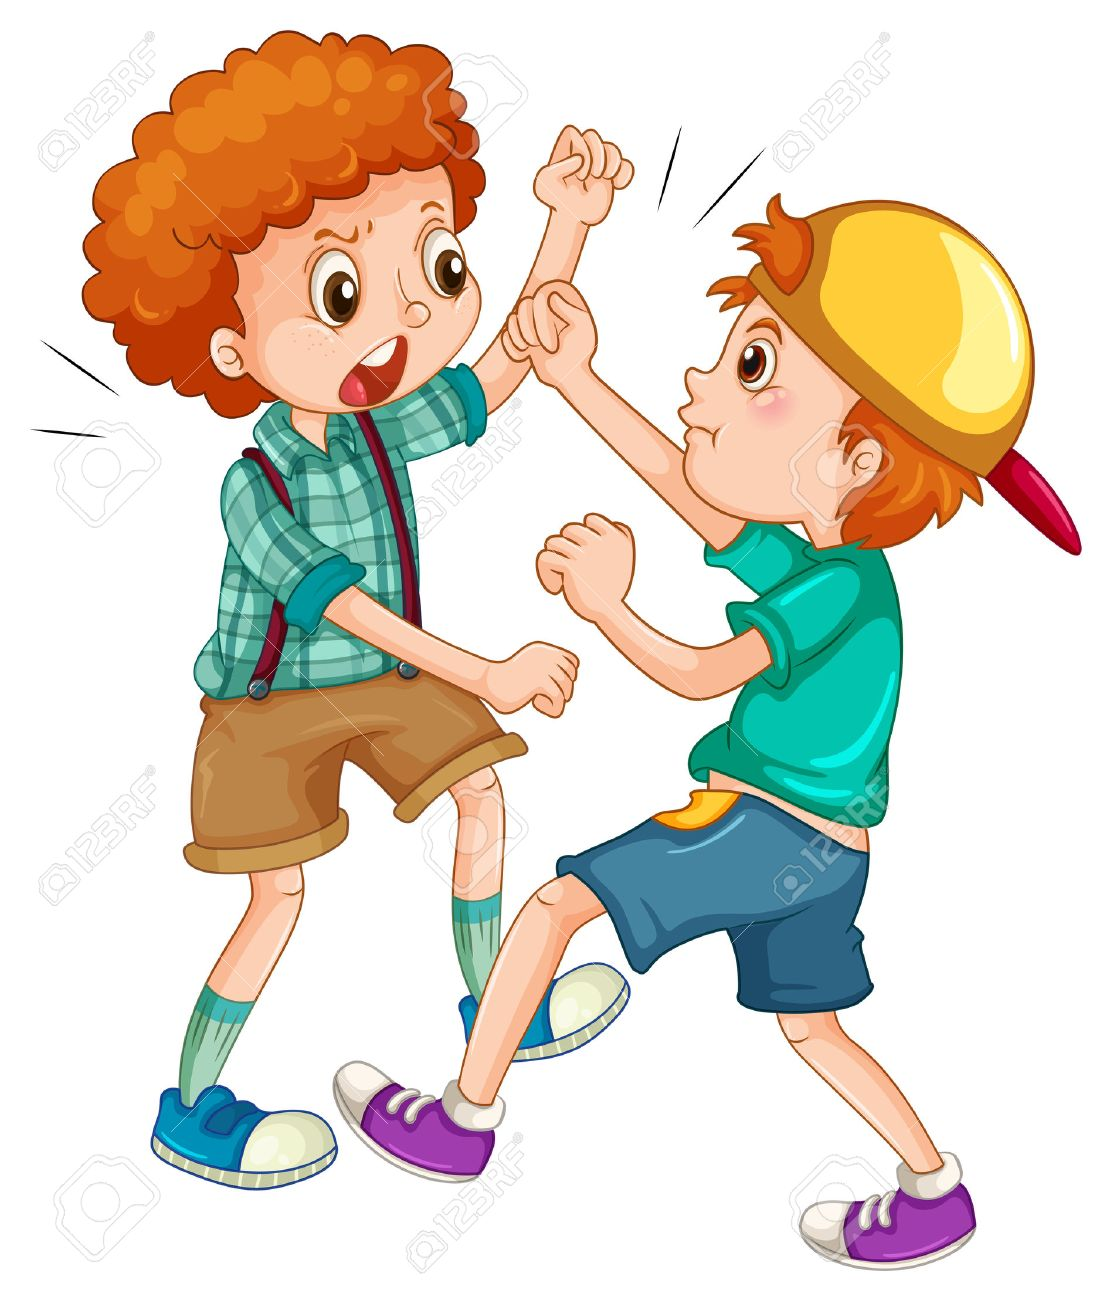 Two People Fighting Clipart